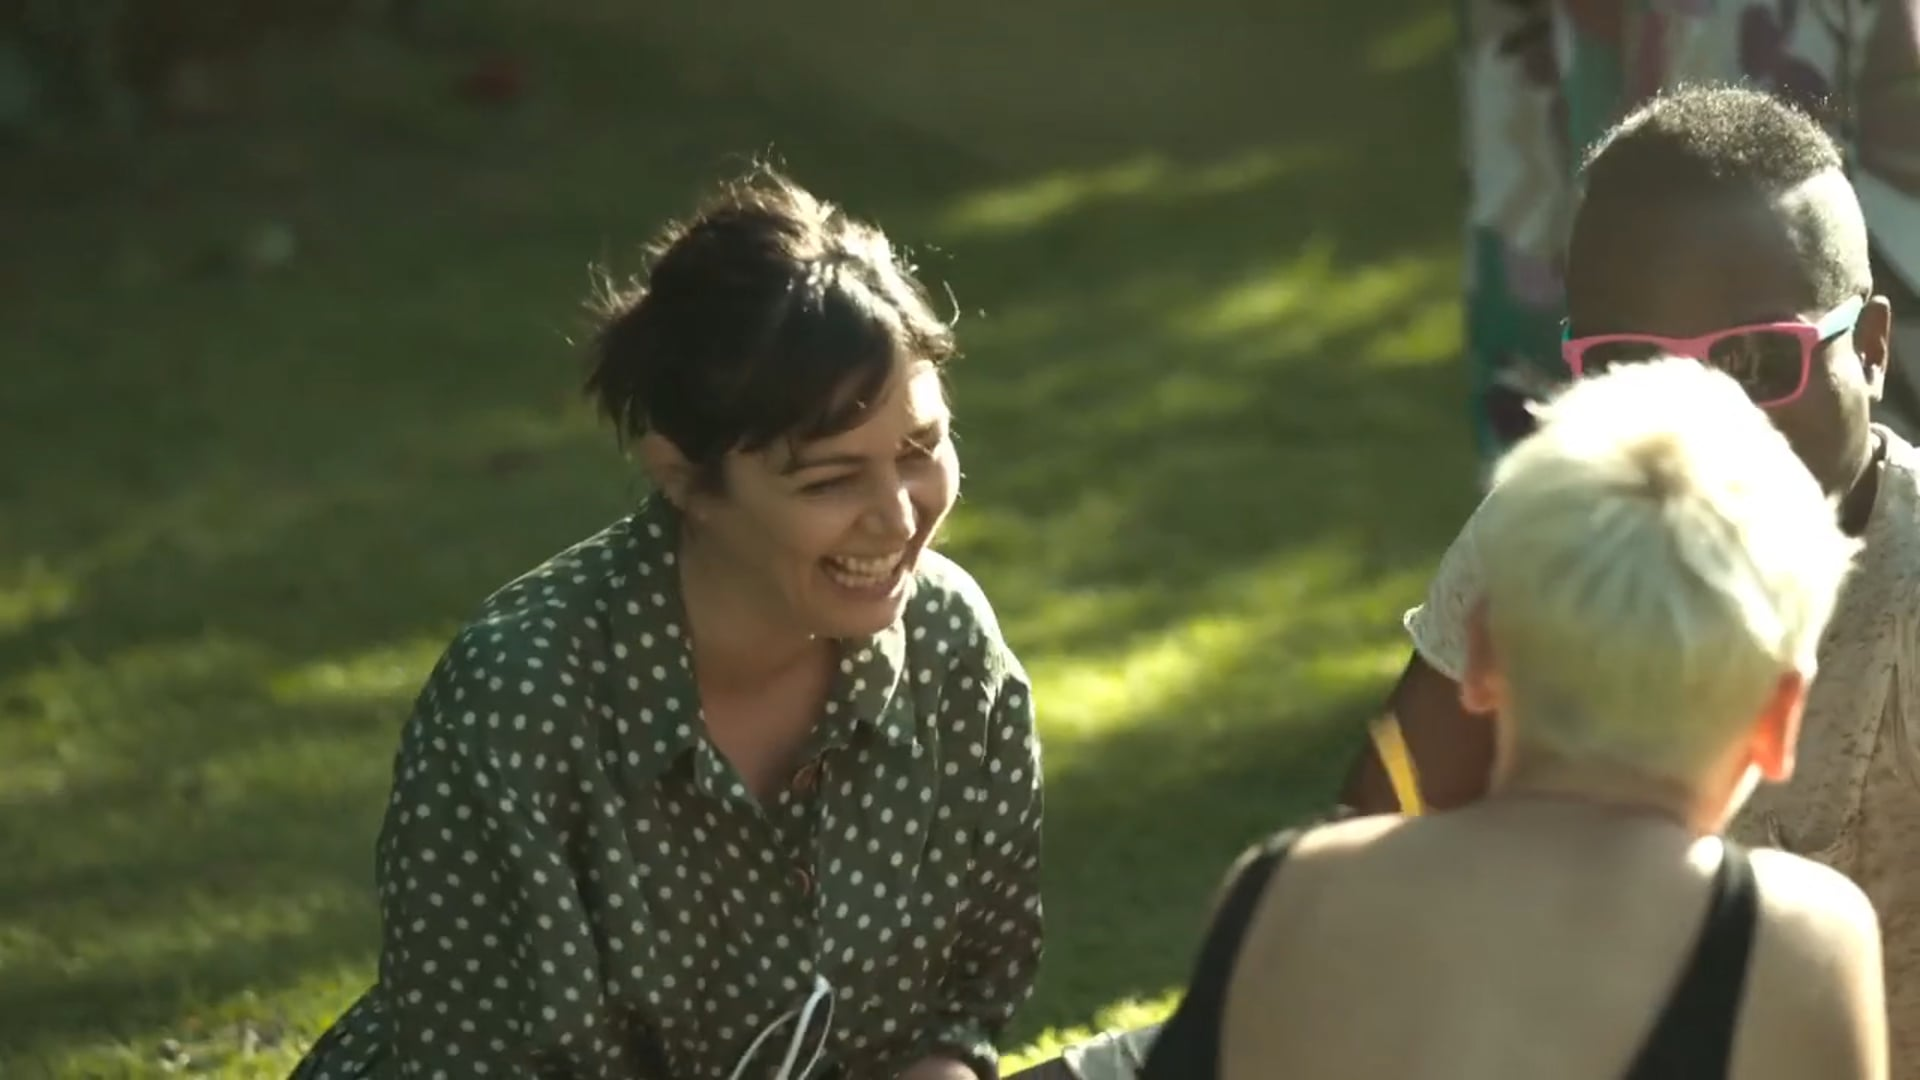 Sainsbury's 'Here Comes The Summer' TVC